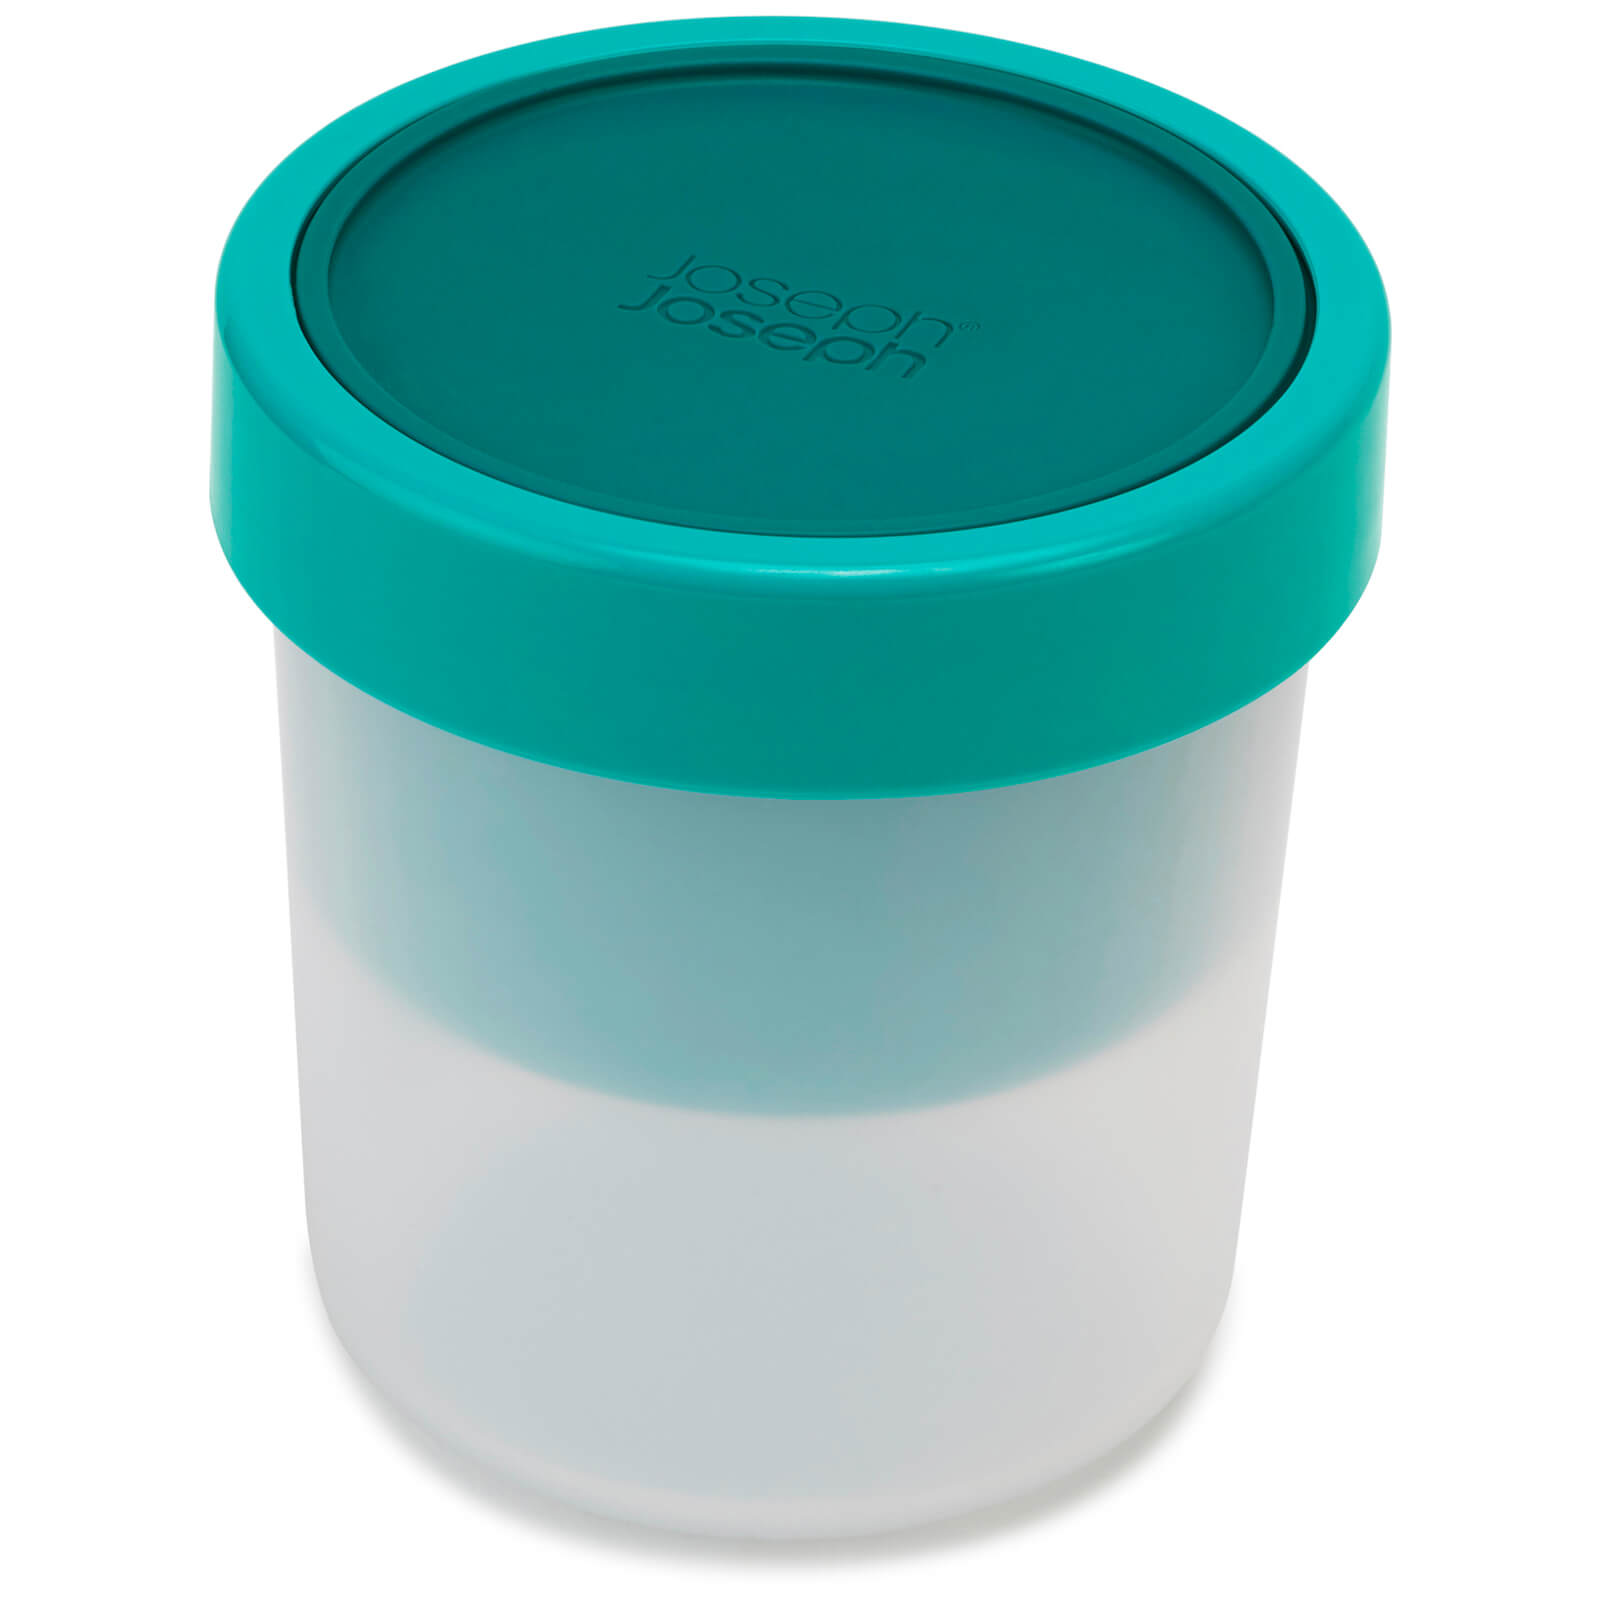 Joseph Joseph GoEat Space-Saving Soup Pot- Teal